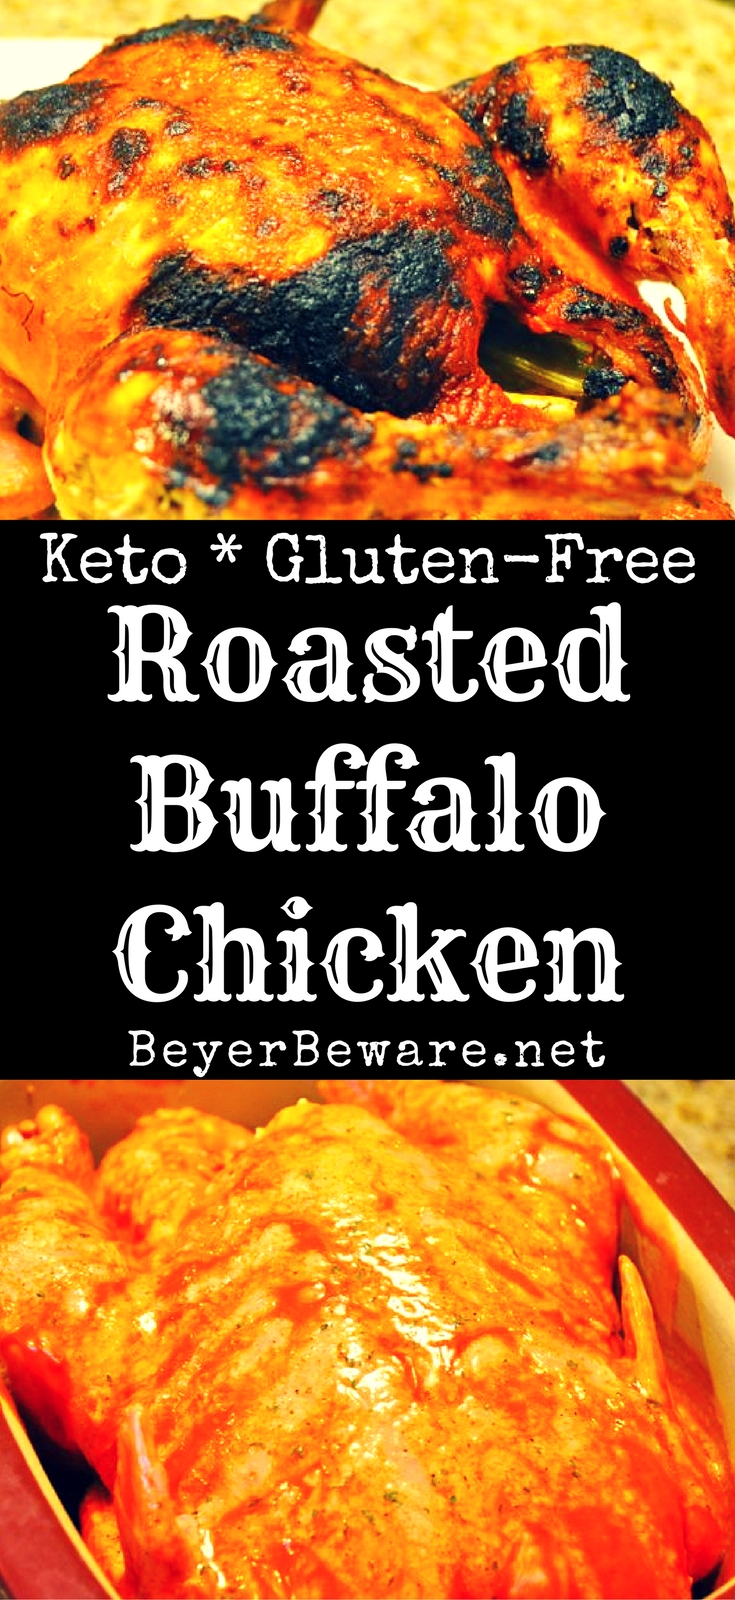 A deliciously spicy whole roasted buffalo chicken that tastes just like buffalo chicken wings thanks to being cooked in butter and buffalo wing sauce.